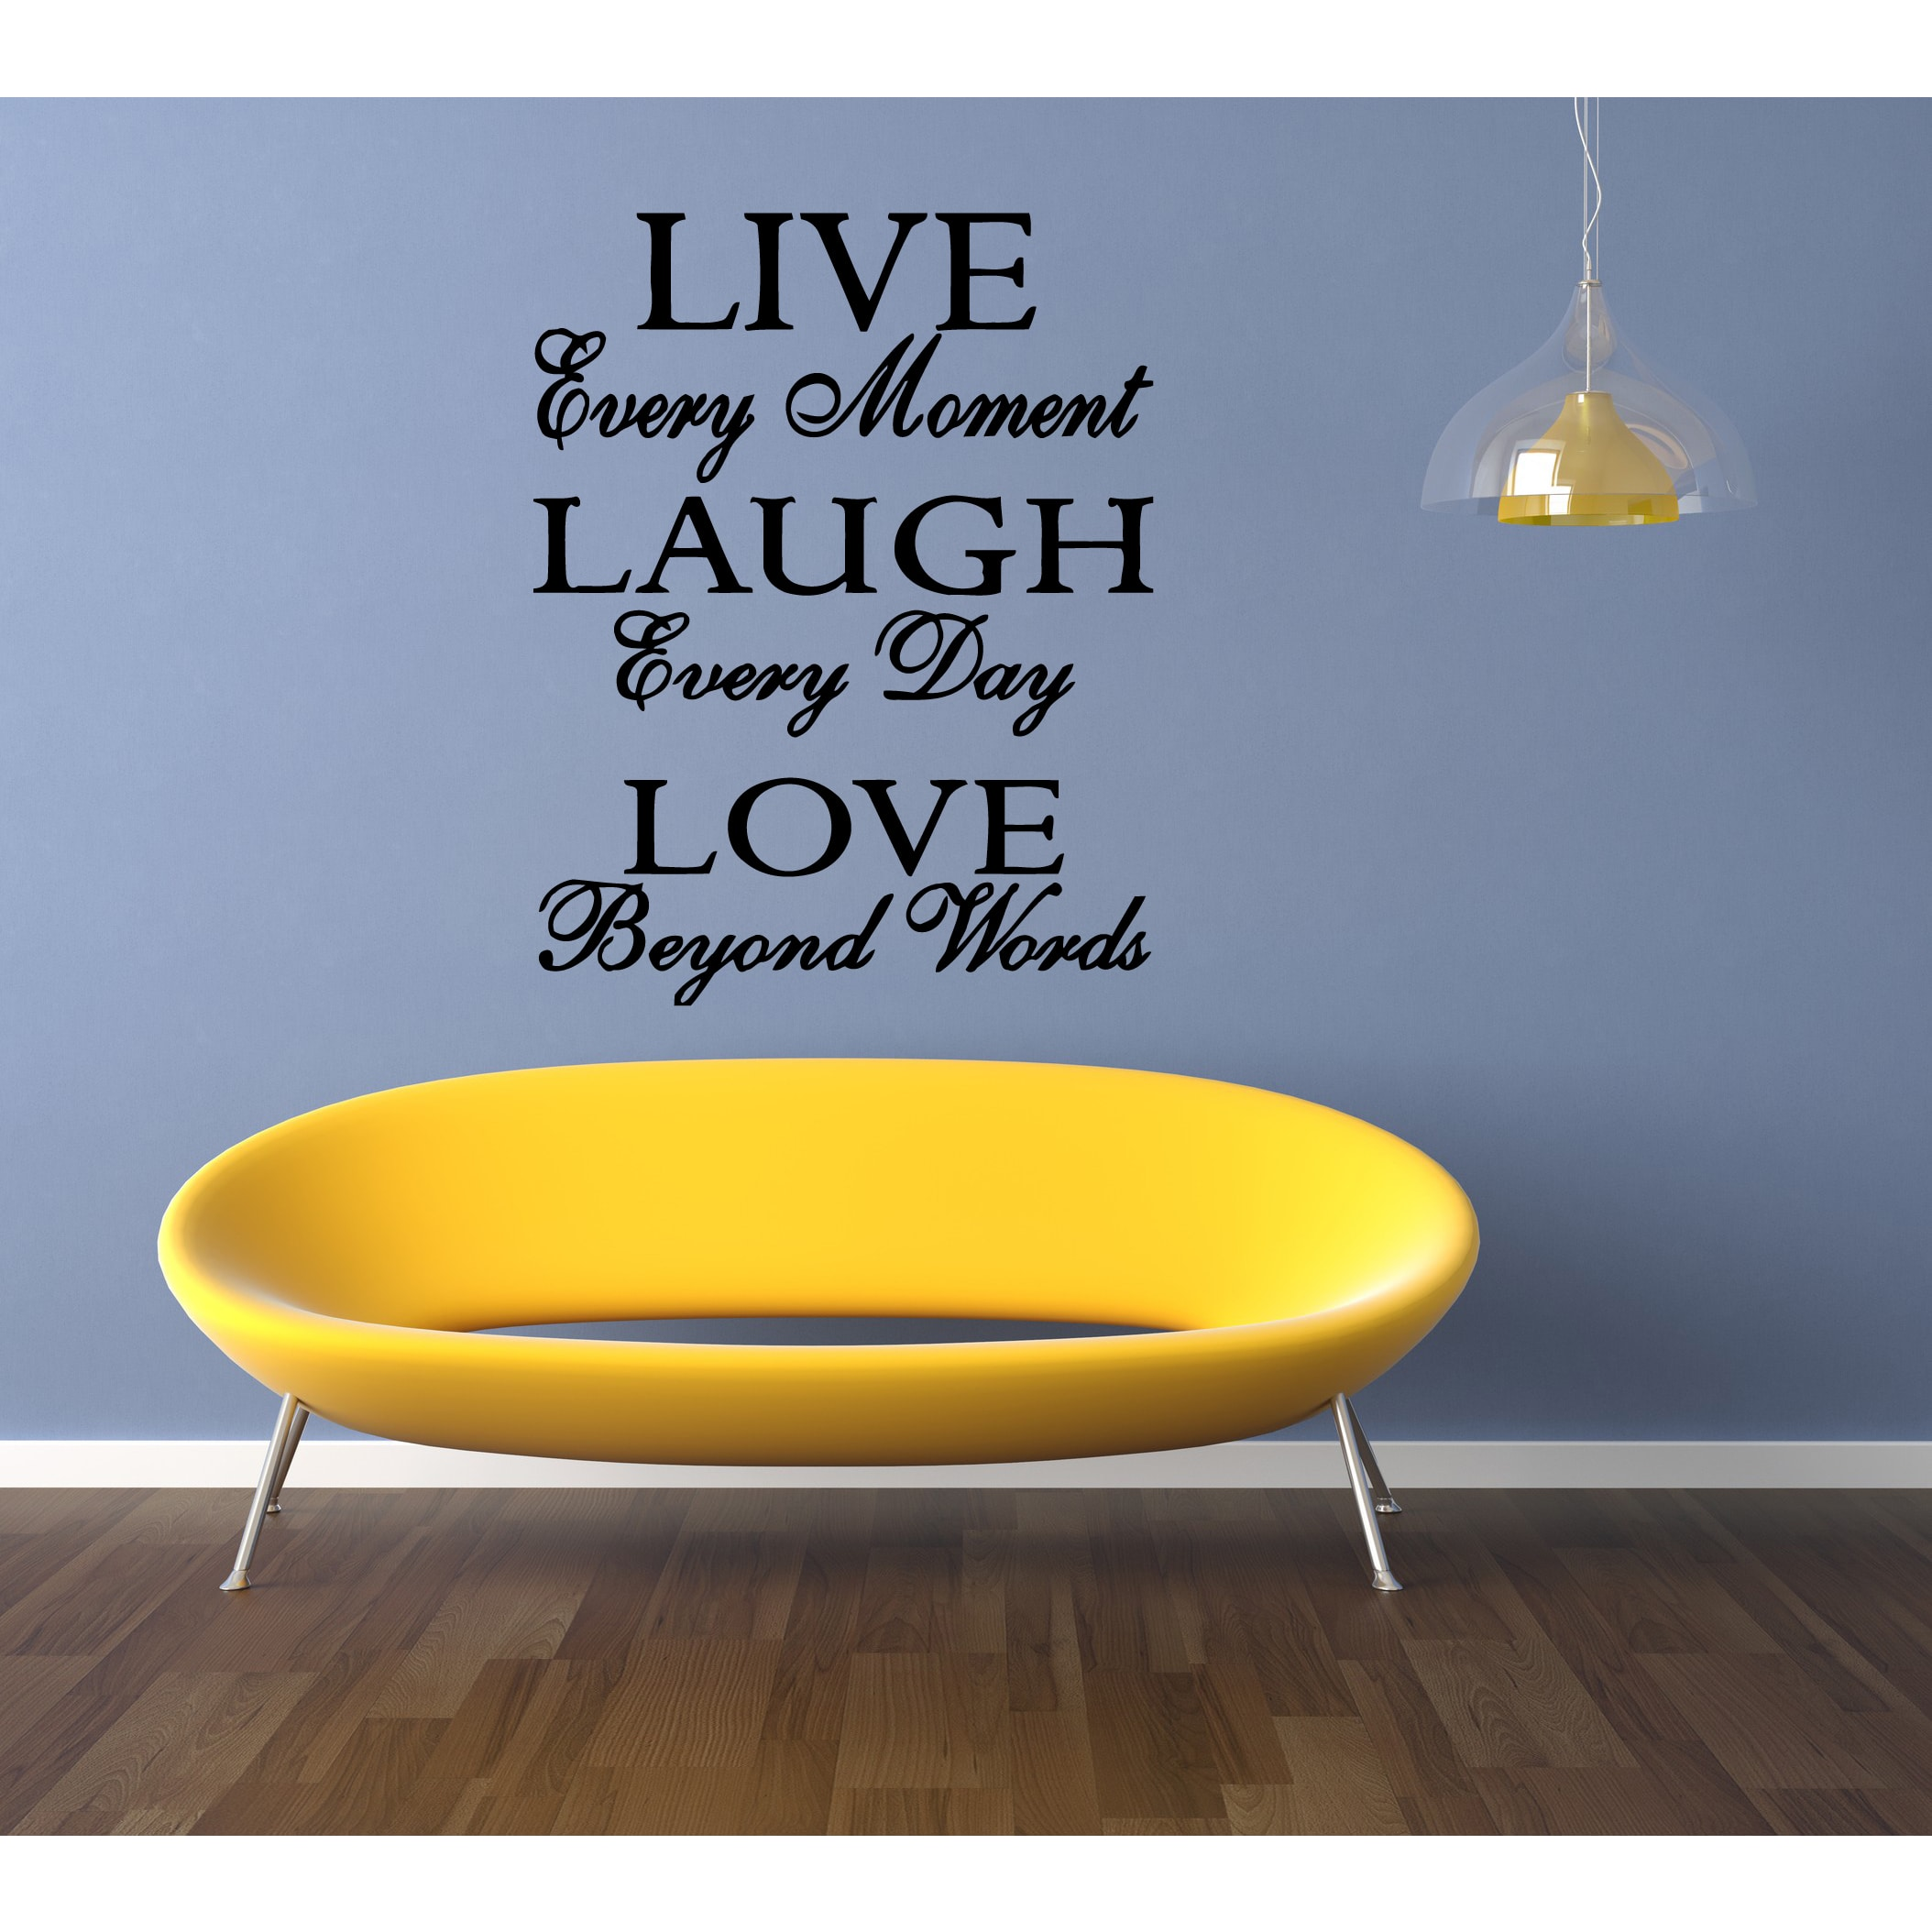 Stickalz llc Live Every Moment quote Wall Art Sticker Decal ...